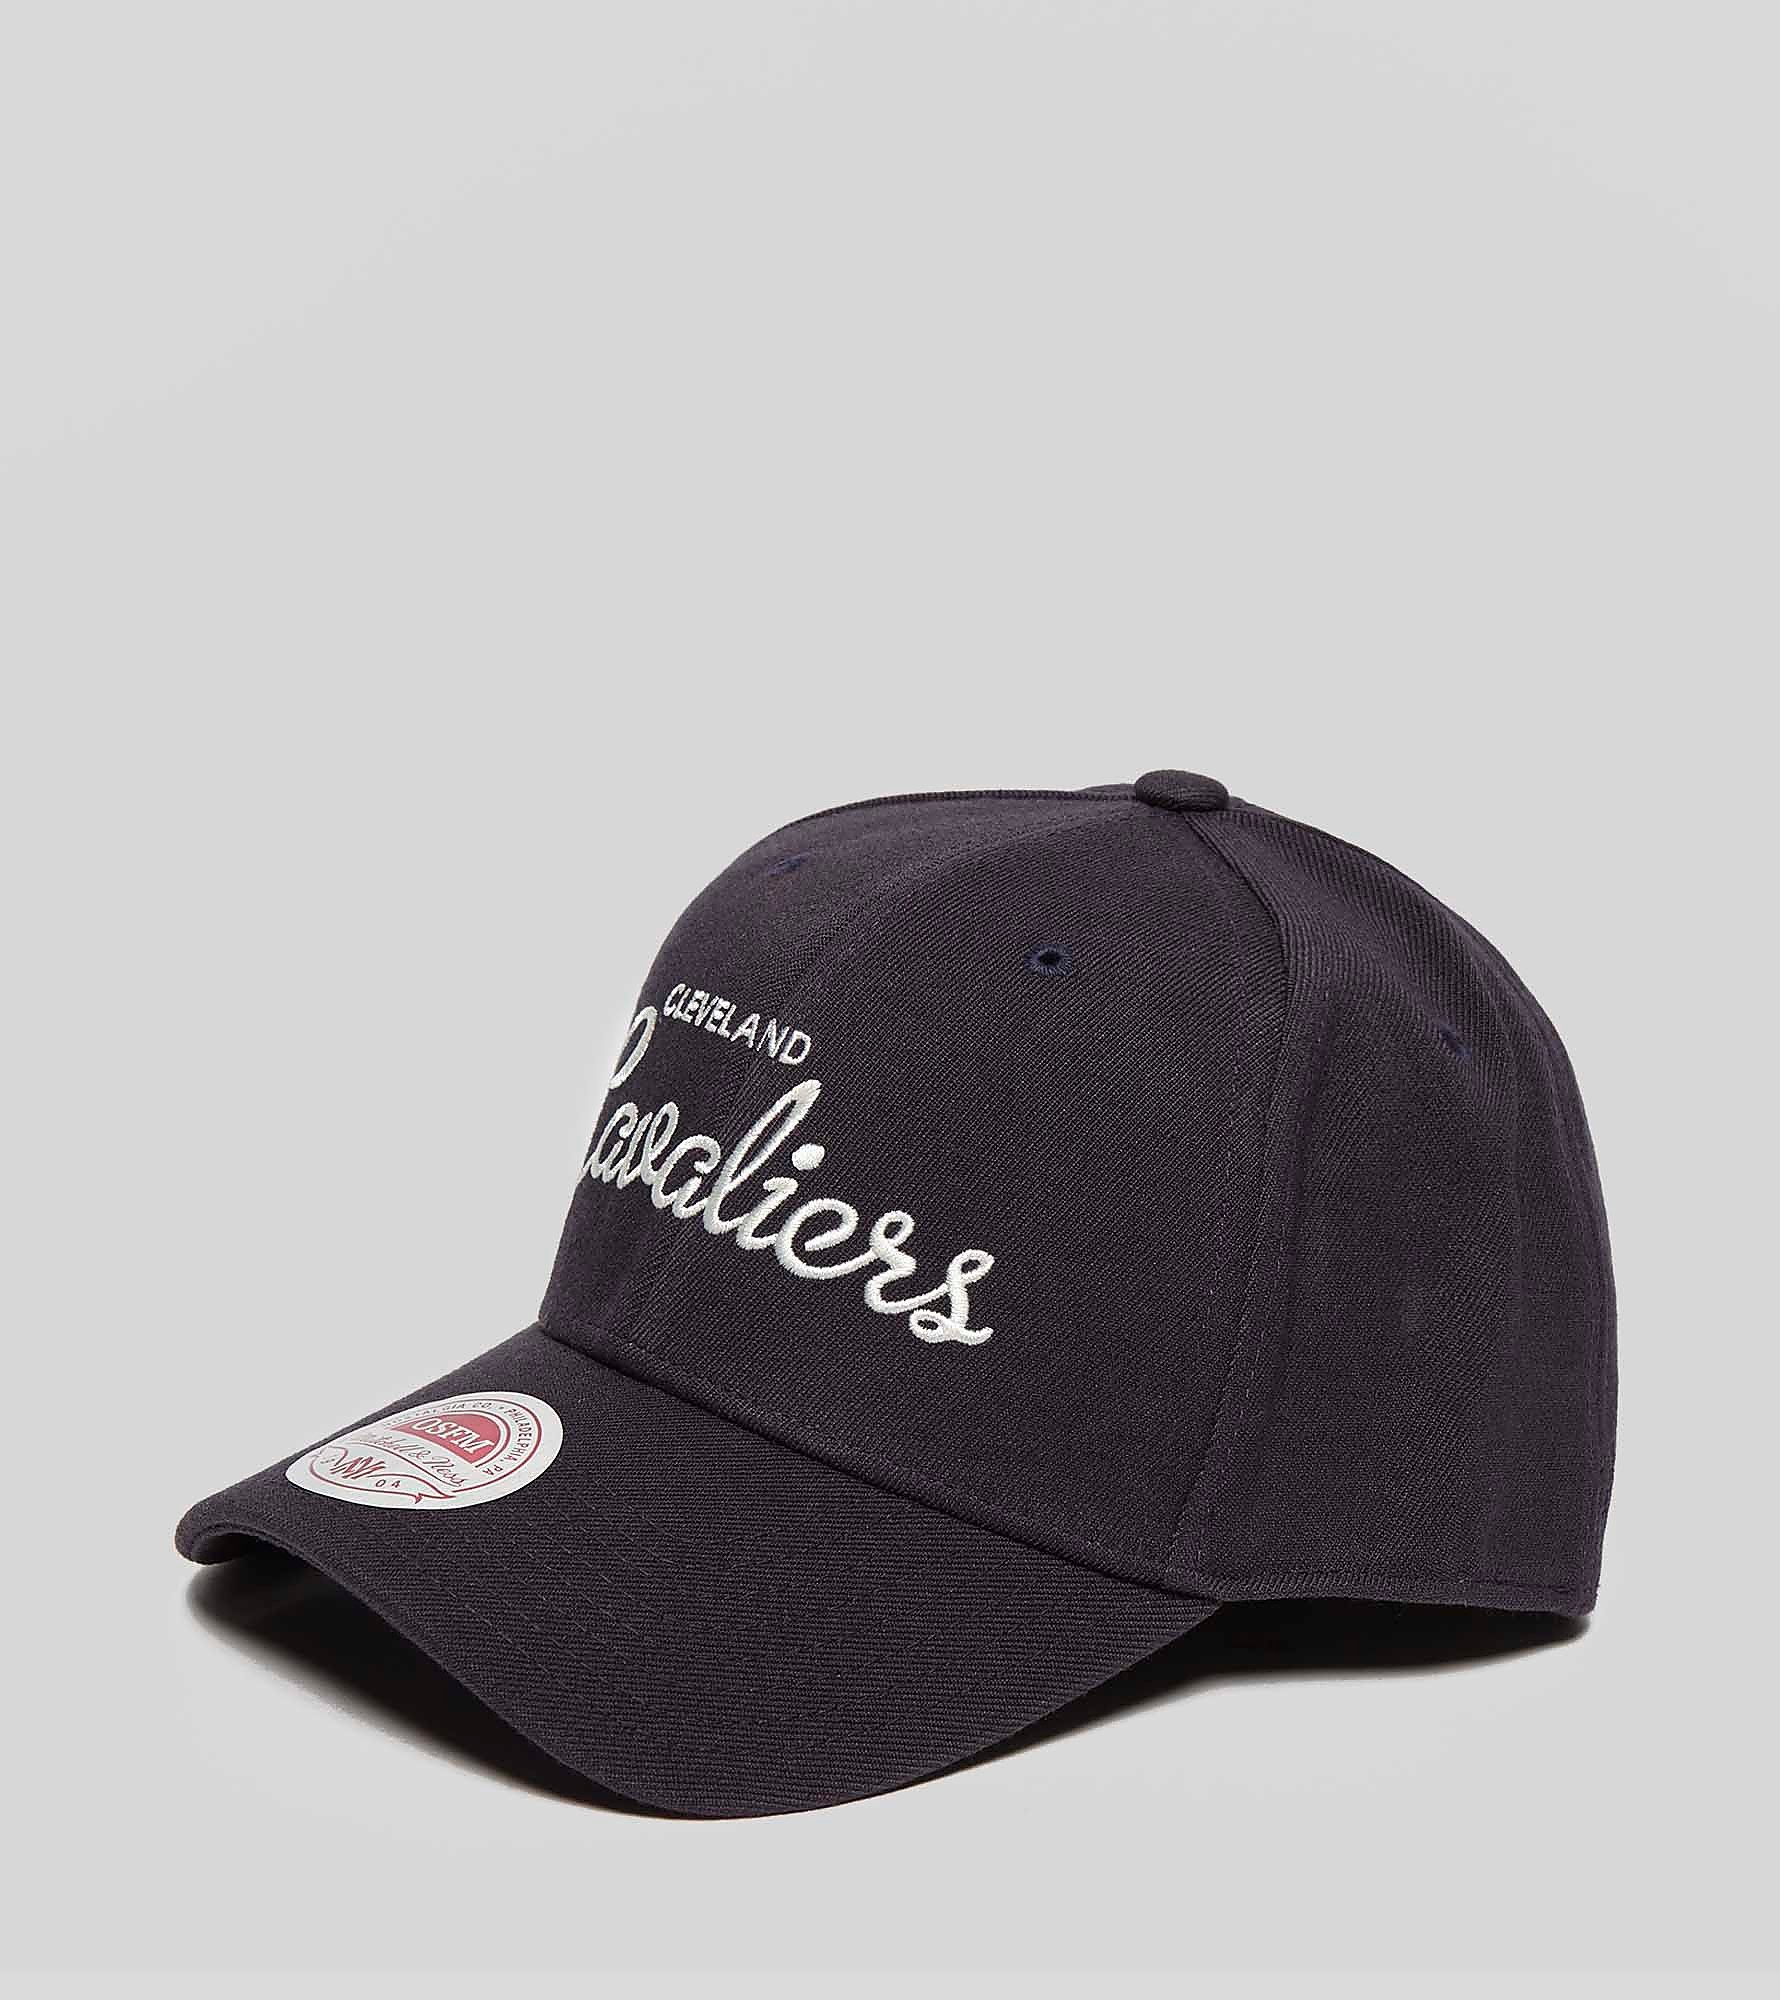 Mitchell & Ness Classic Curved Script Fitted Cap